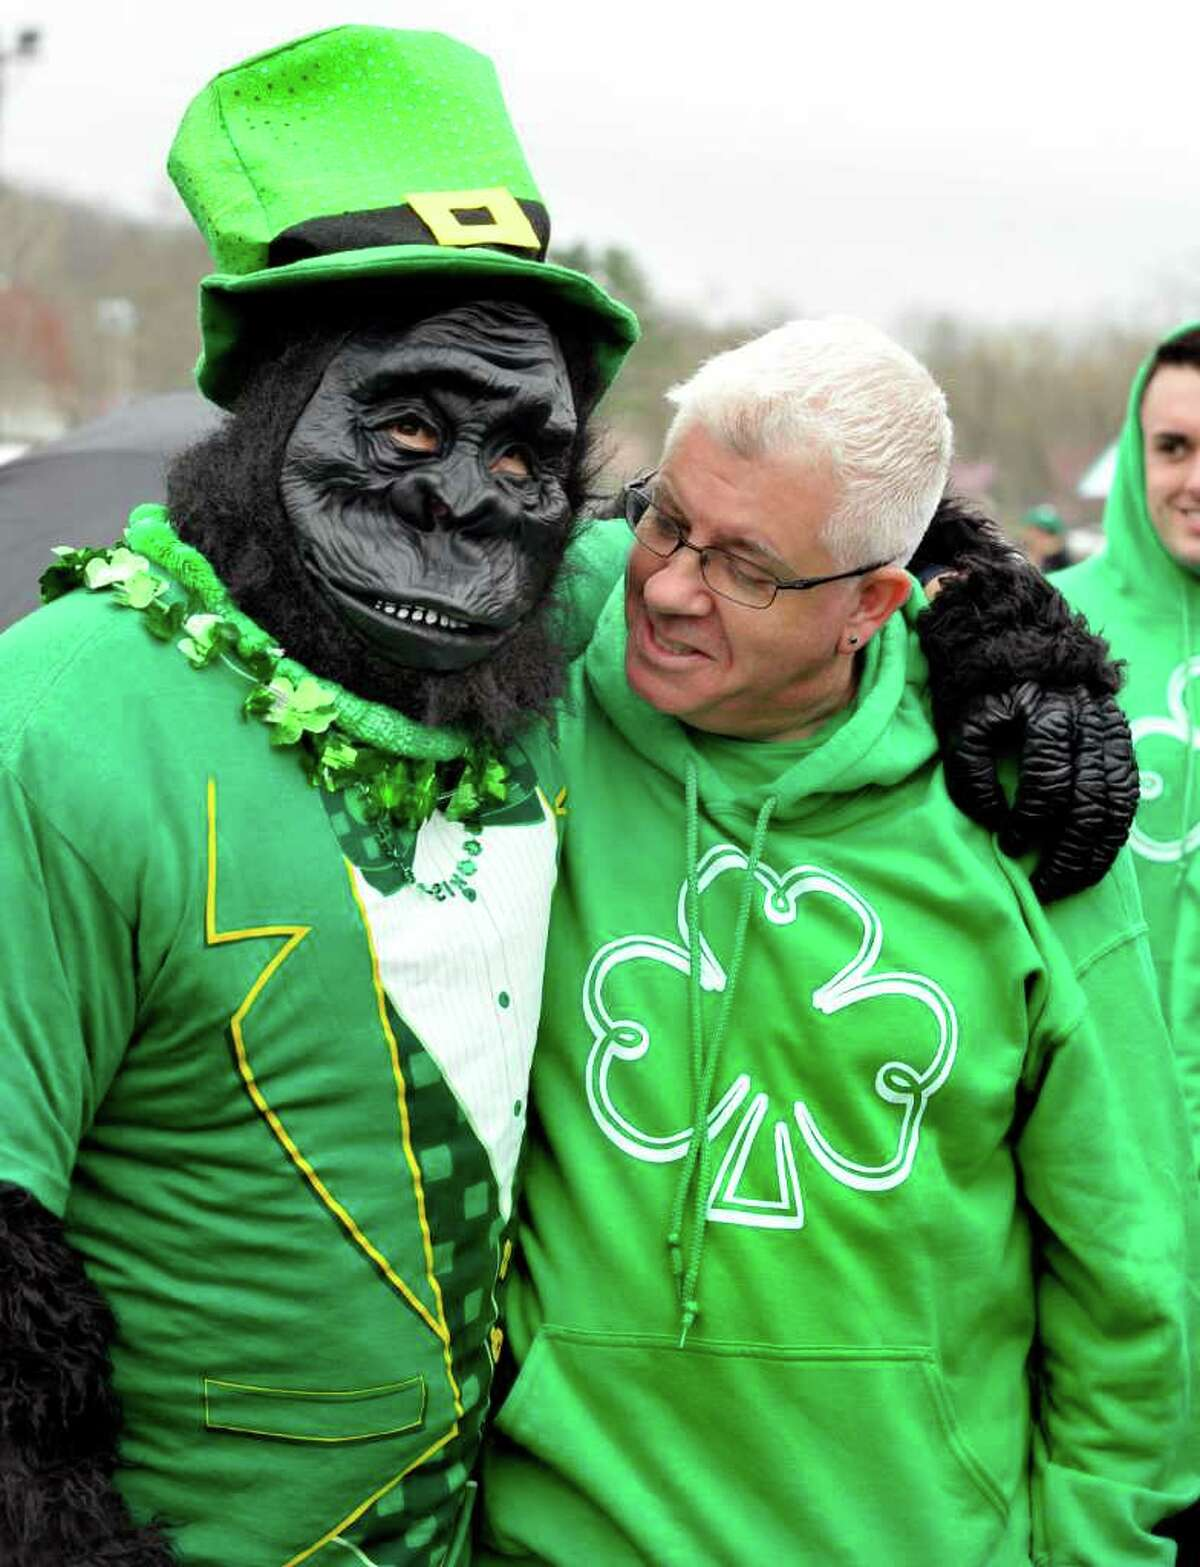 The St. Patrick's Day parade is held in Danbury Sunday, March 25, 2012.